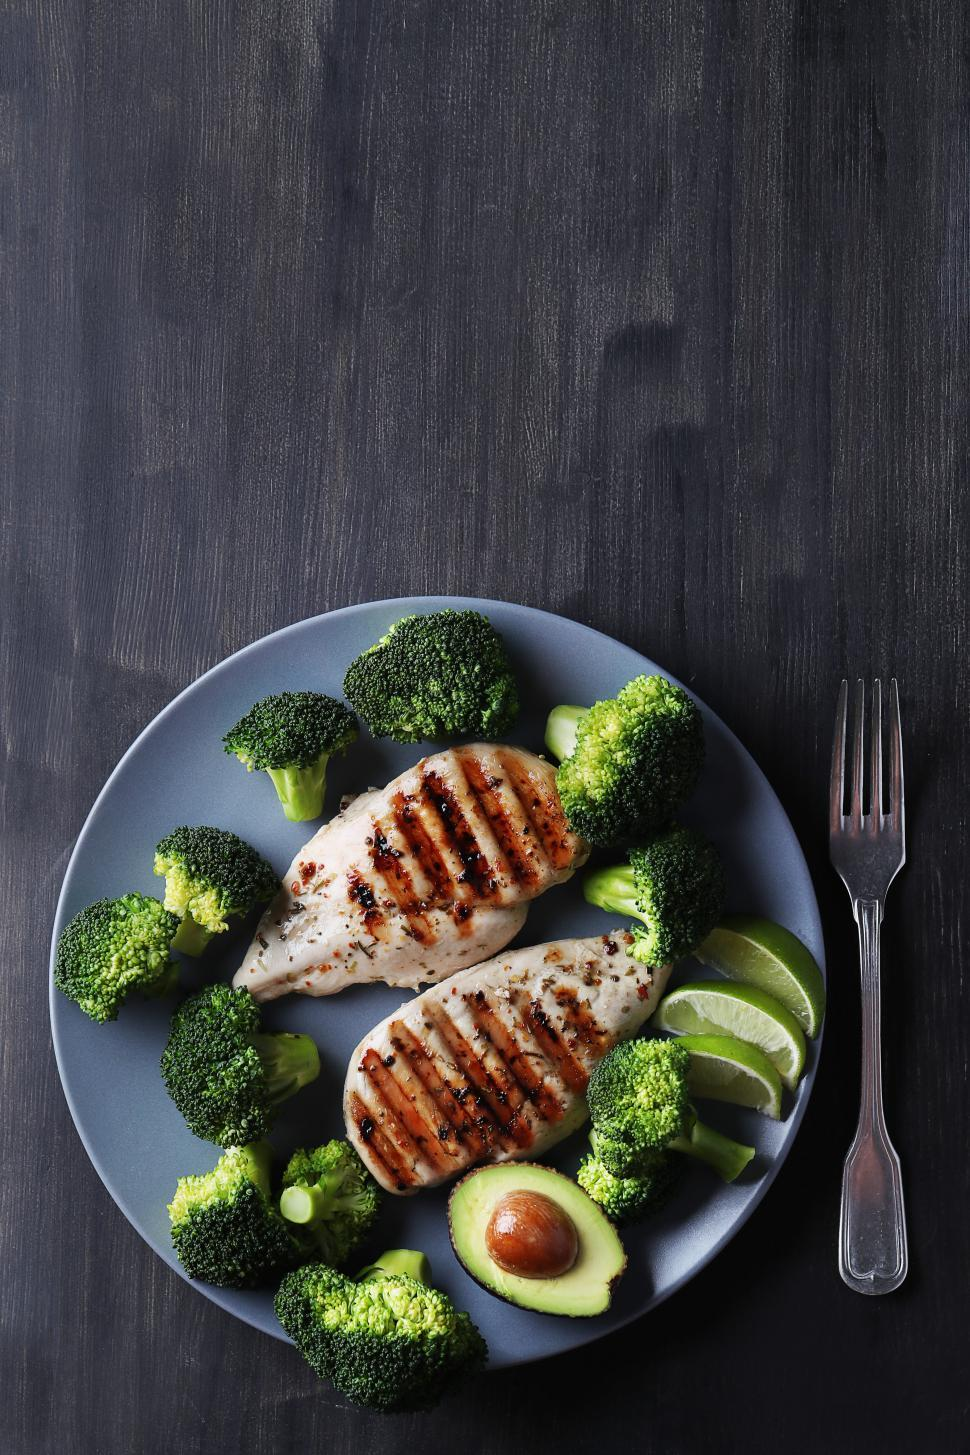 Download Free Stock Photo of Grilled chicken and broccoli dinner